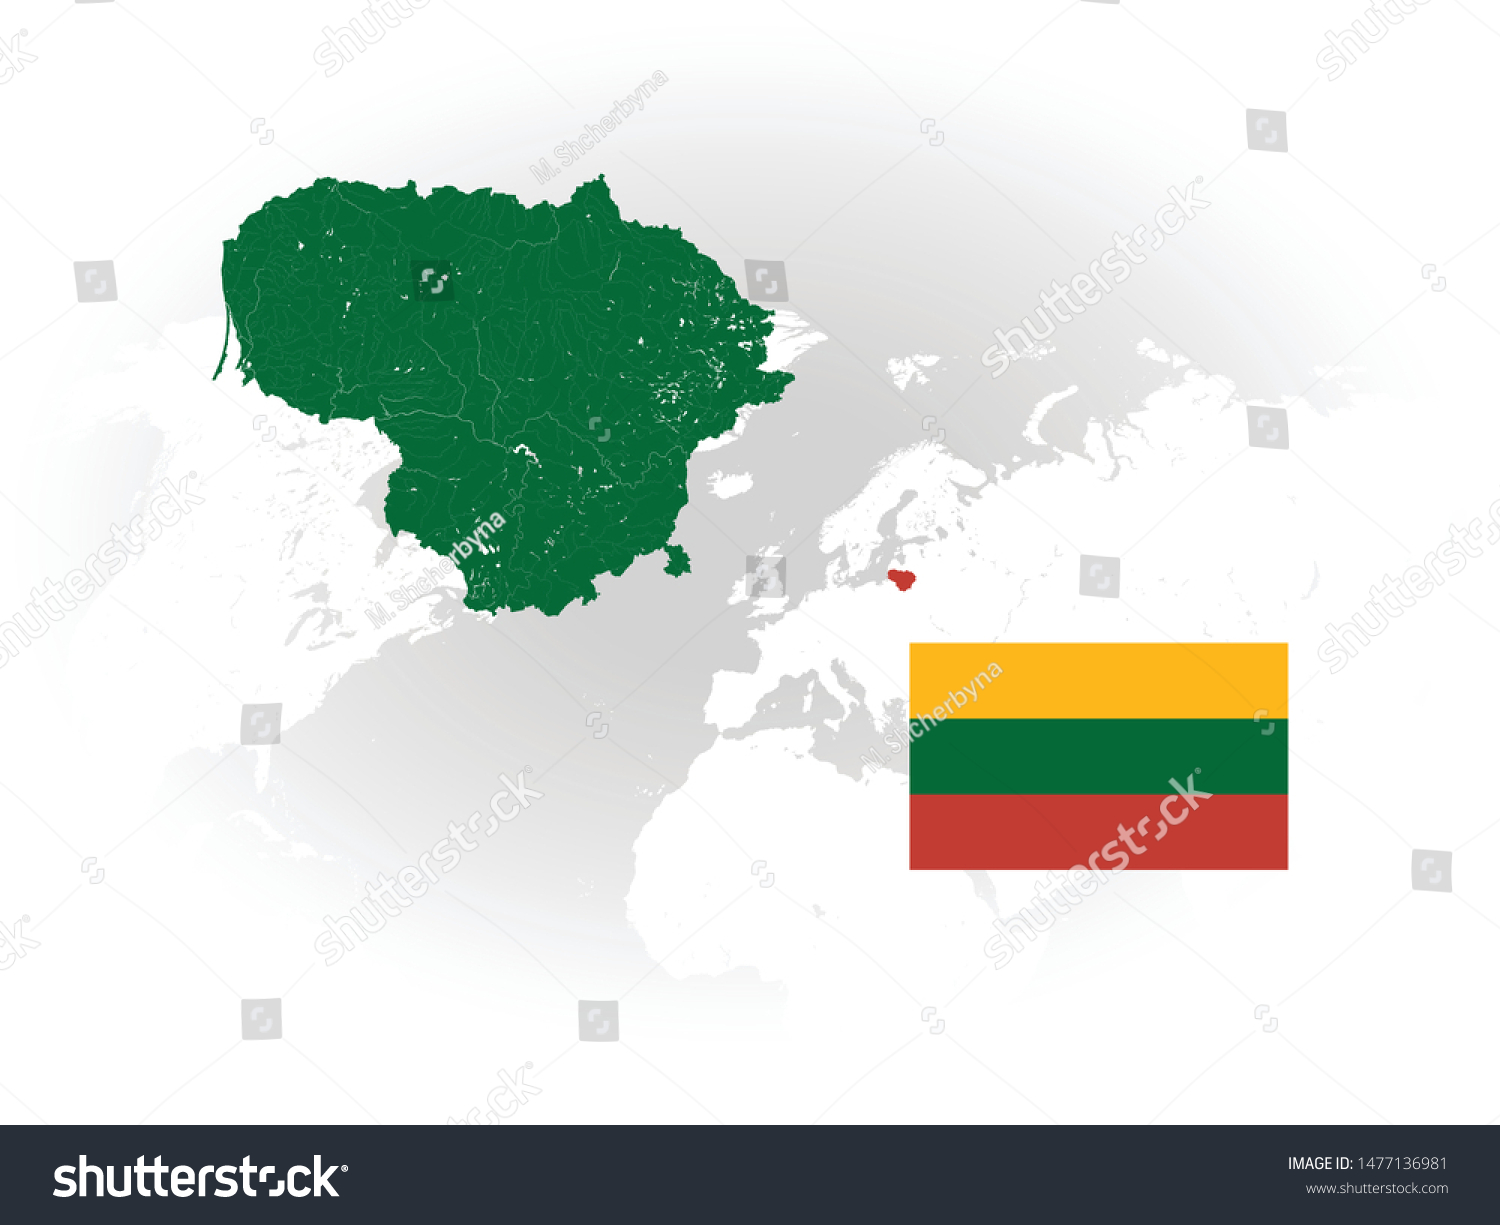 Image of: Map Lithuania Rivers Lakes Flag Lithuania Stock Vector Royalty Free 1477136981